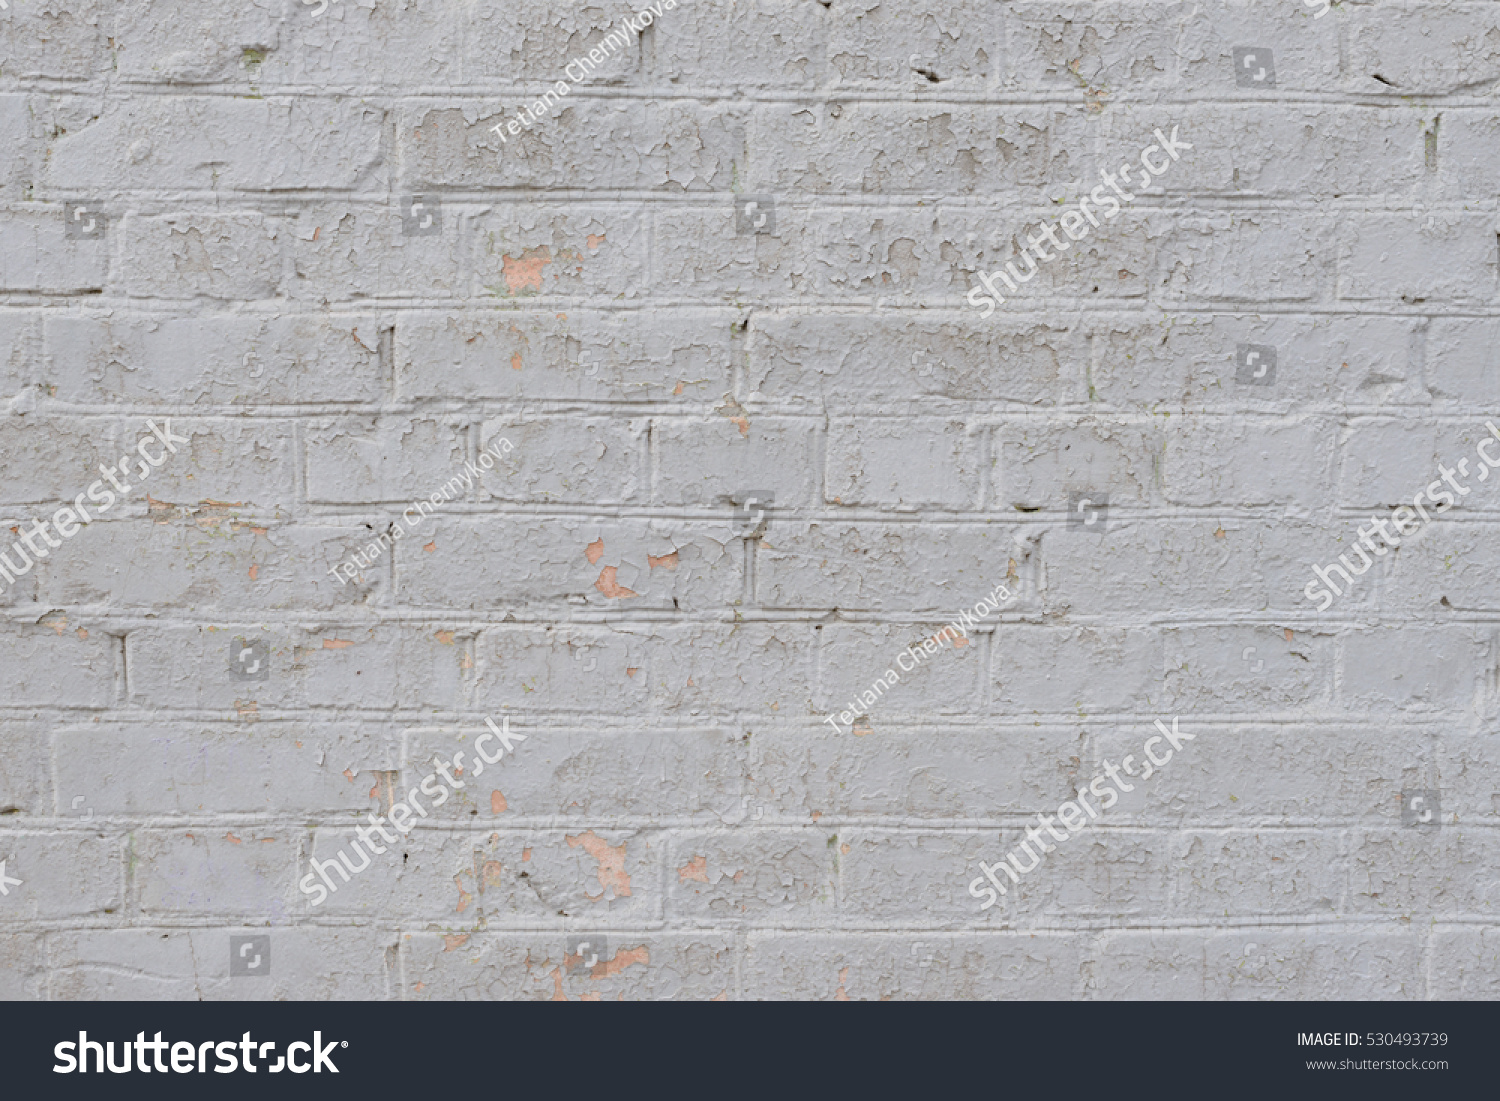 how to fix scratches in bricks